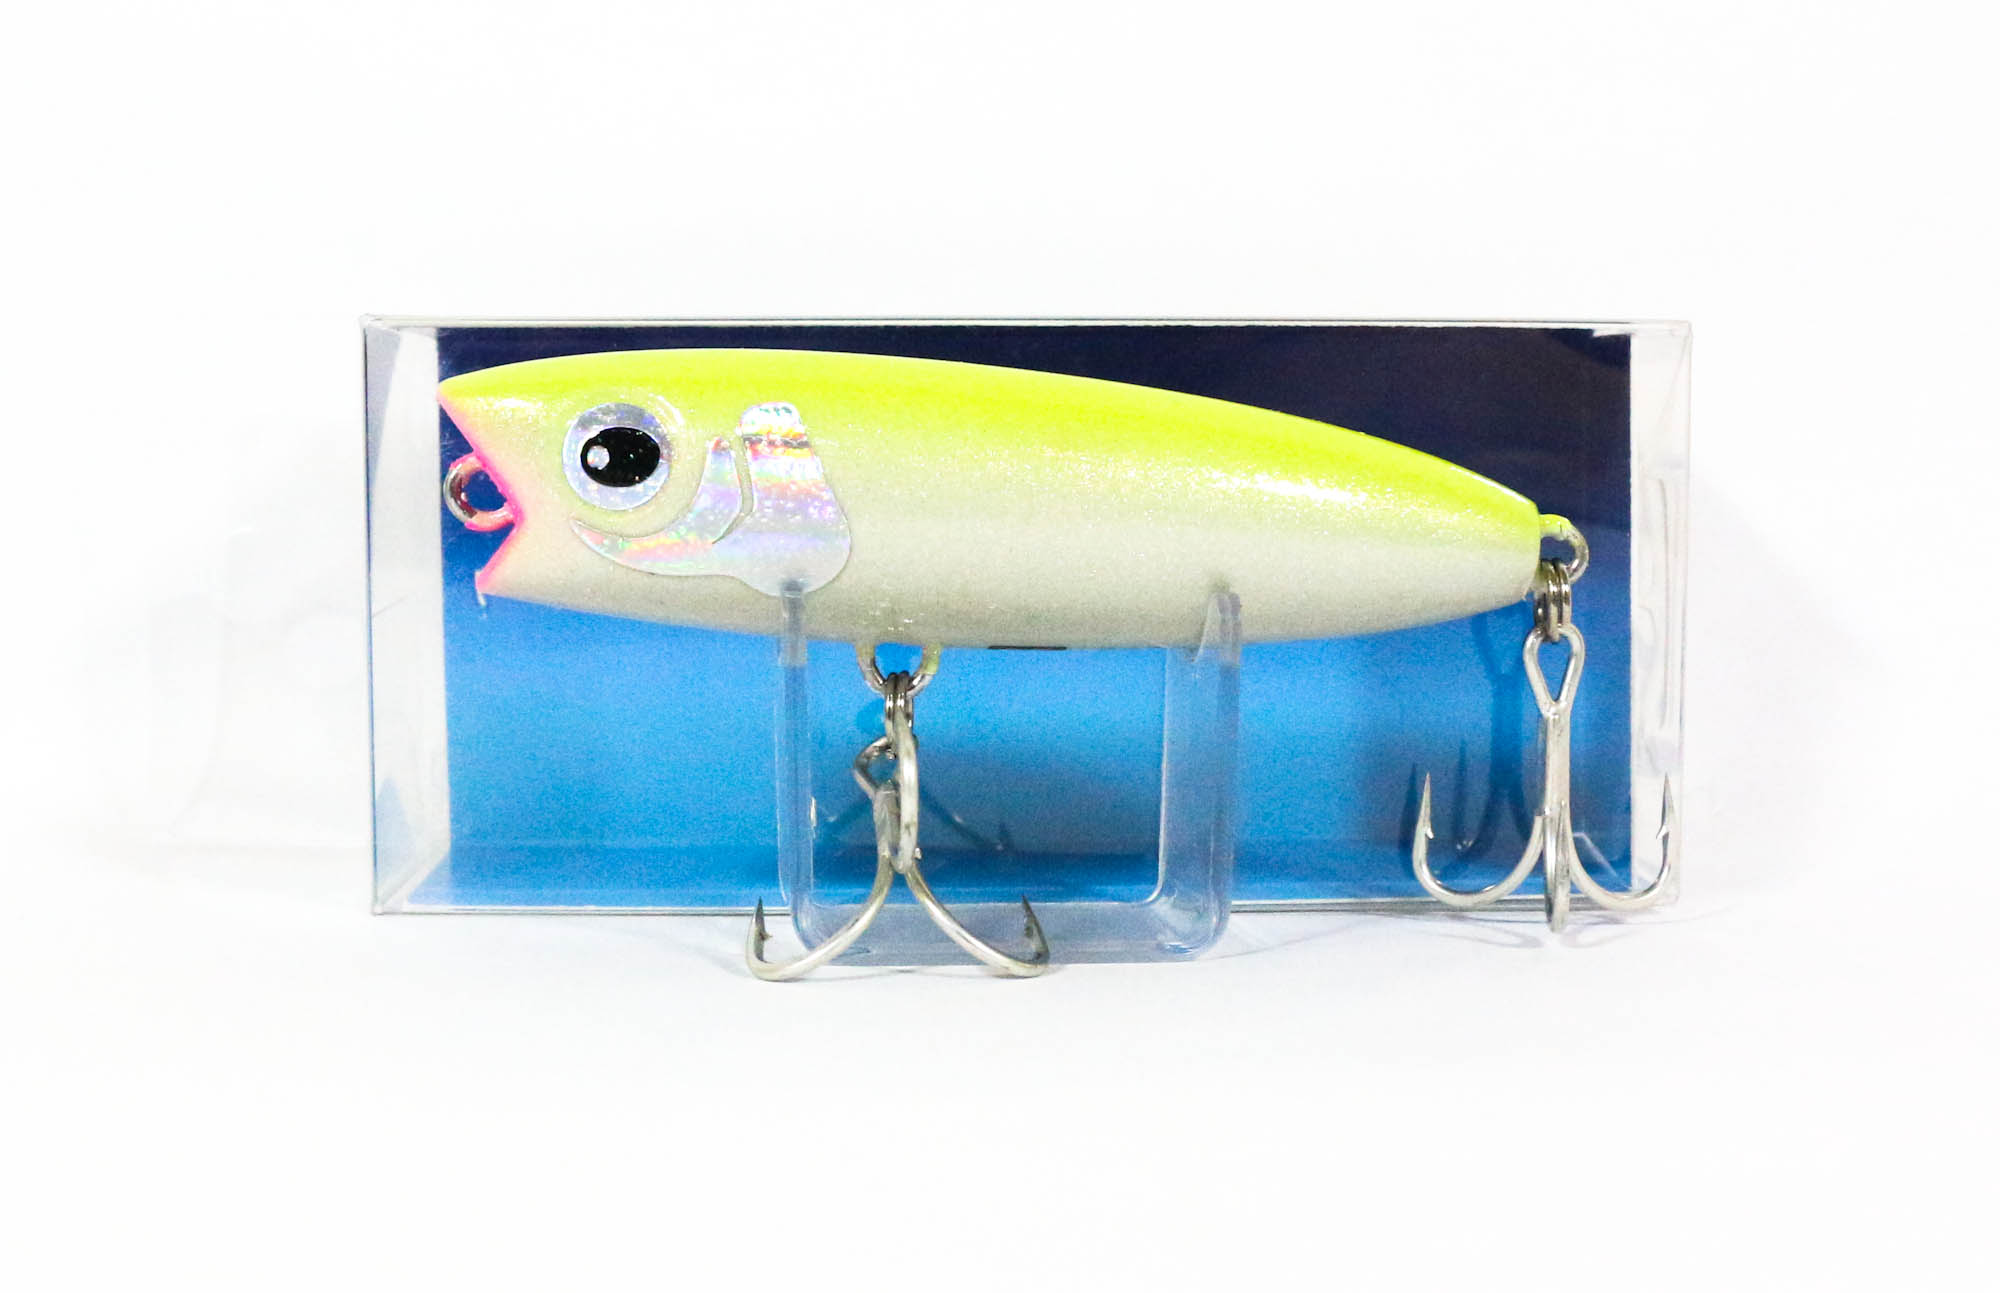 Sale FCL Labo Stick Bait CSP 75 SPF Floating Lure MGCH (4335)